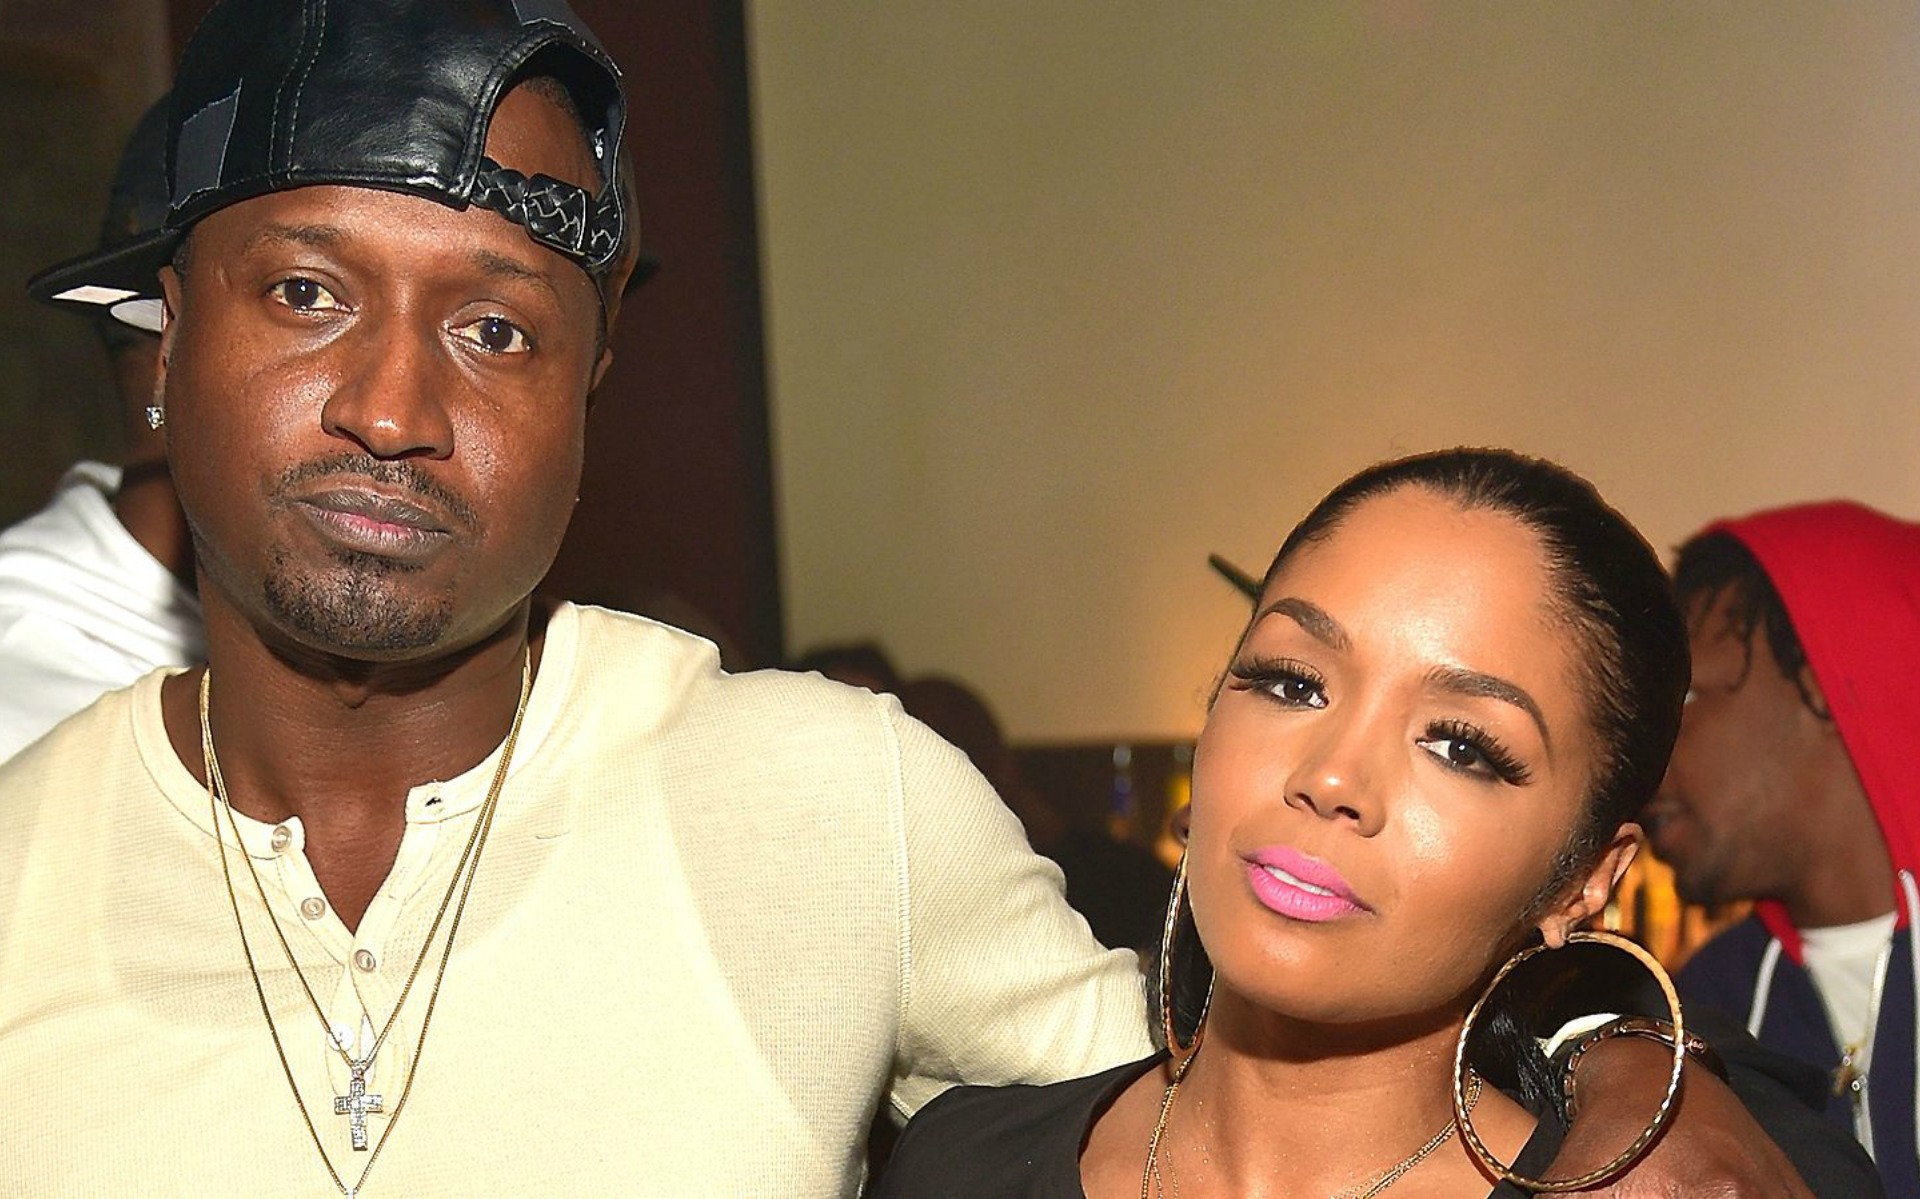 Rasheeda Frost Celebrates Kirk Frost's Birthday With His KIds - Fans Gushed Over The Relationship Between Rasheeda And Kirk's Daughter, Kelsie Frost